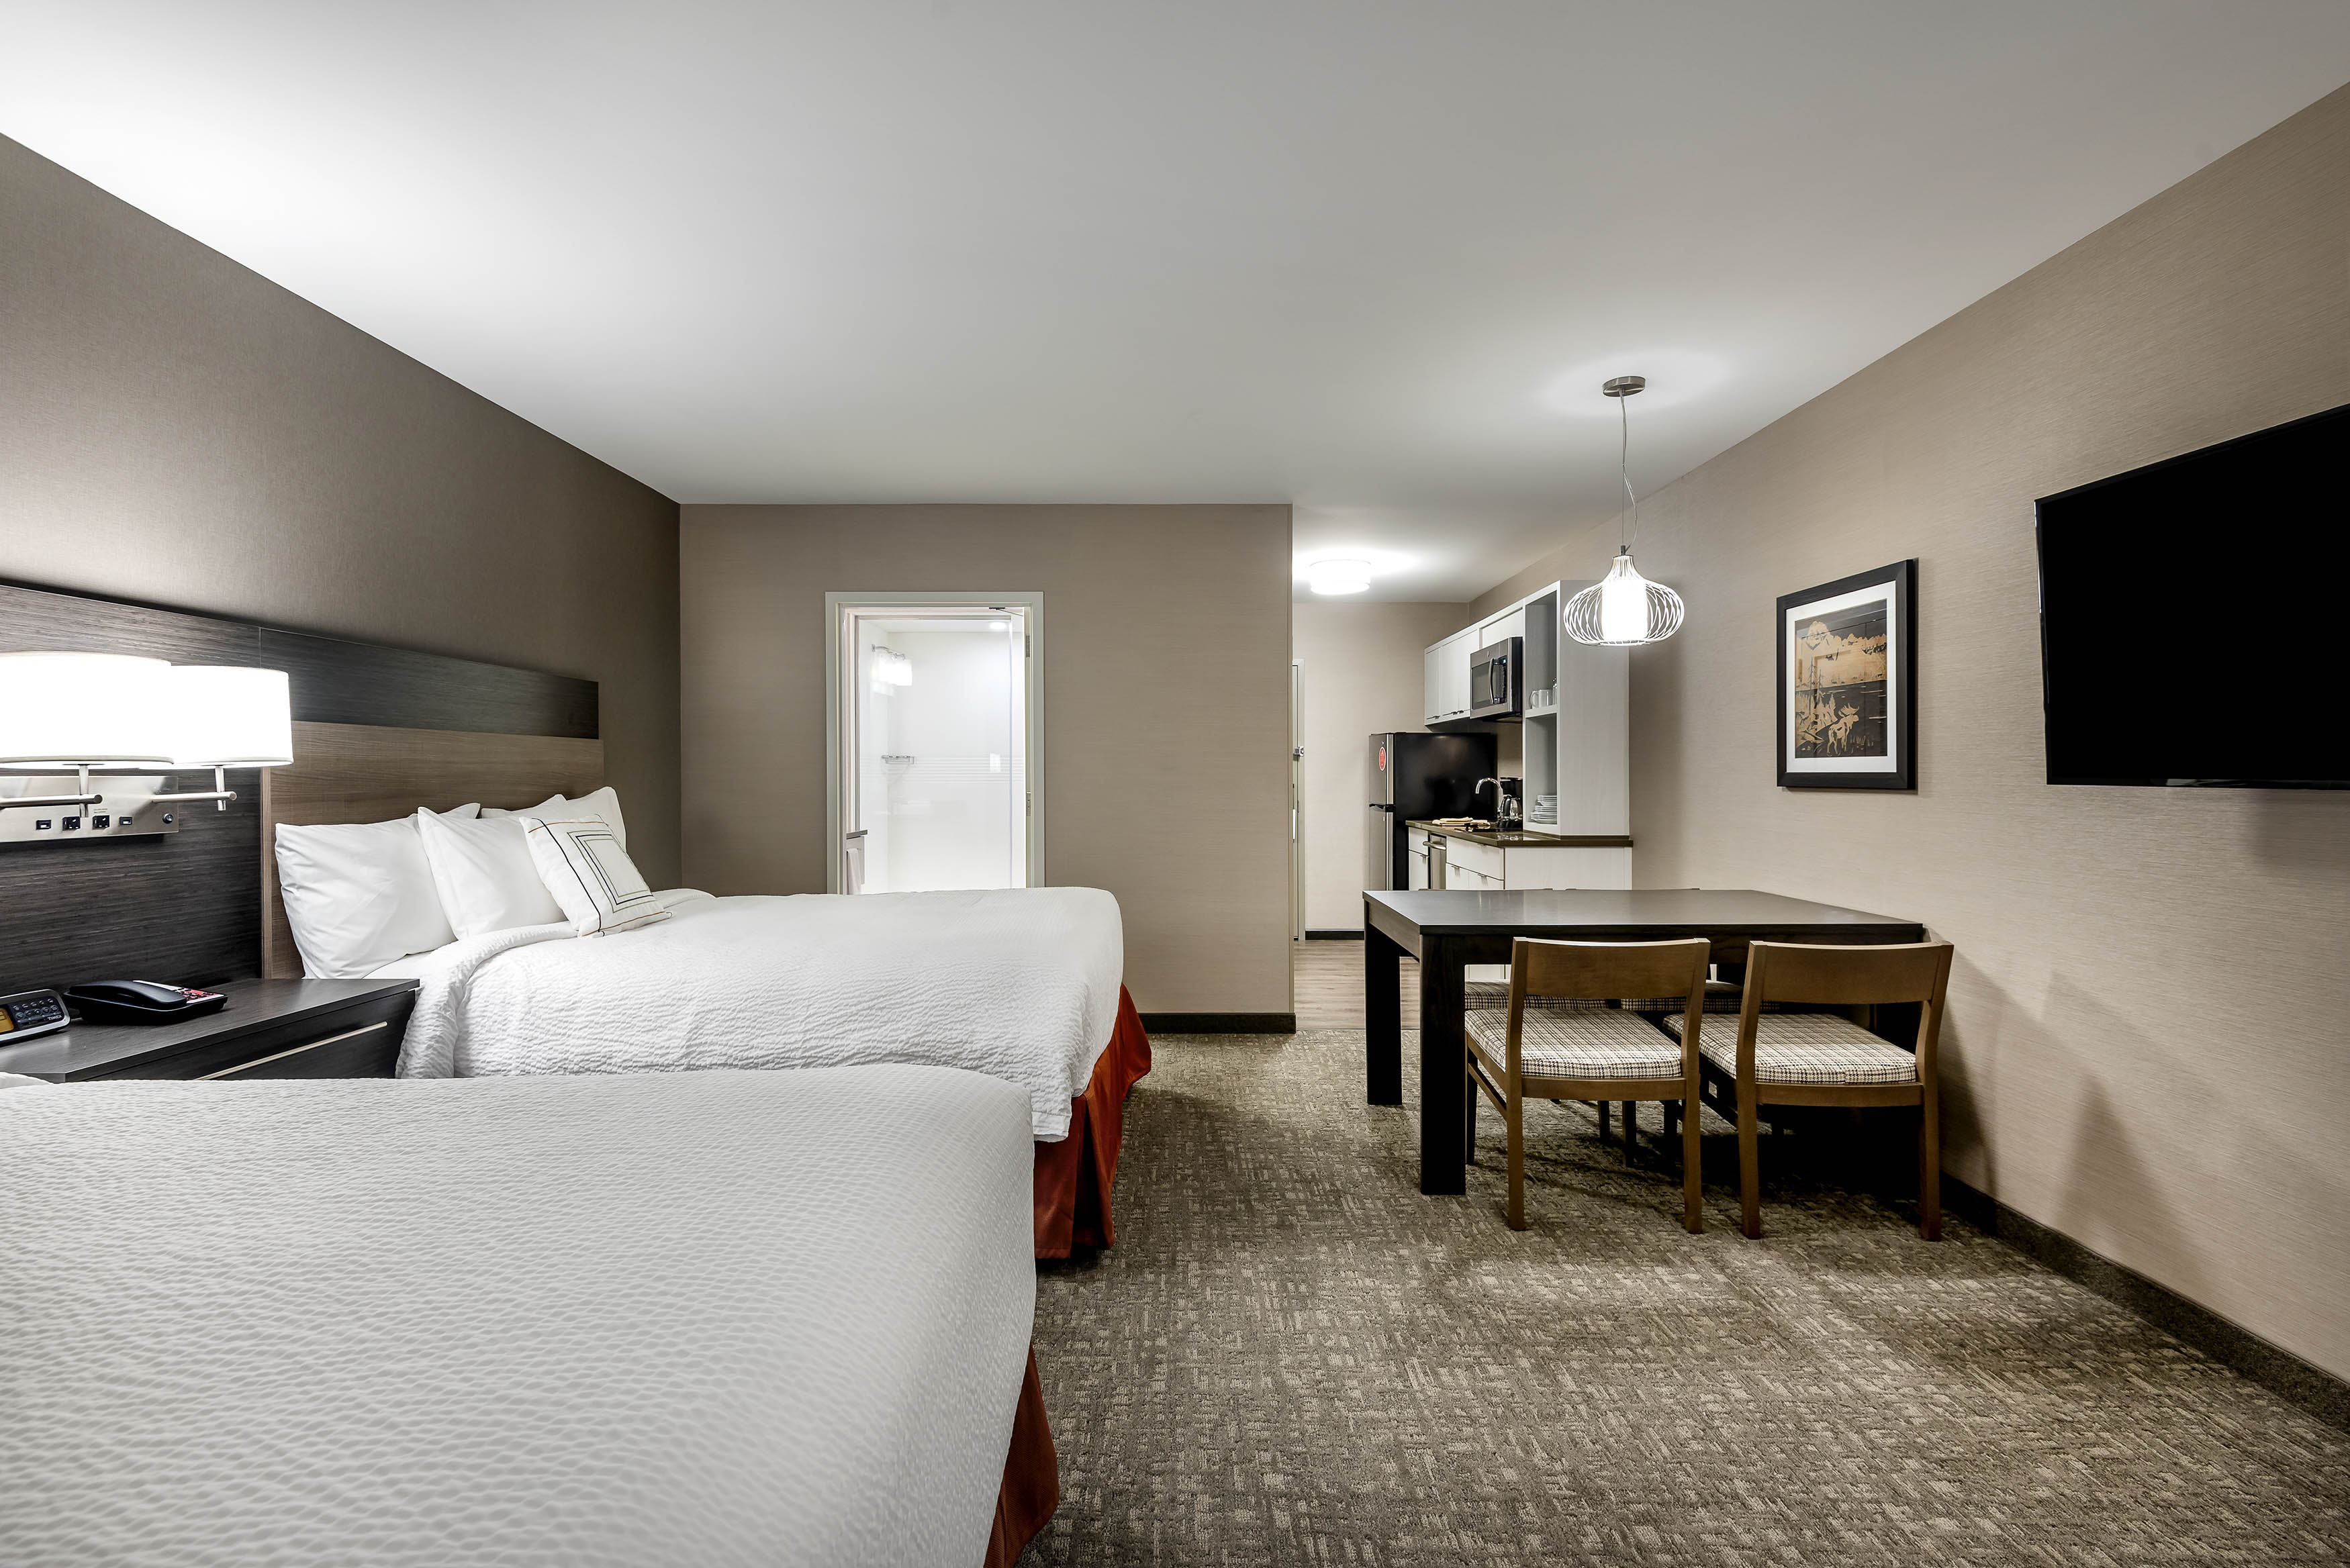 Towne-place-suite-marriott-hotels-towneplace-hotel-whitefish-montana-double-bed-alternate